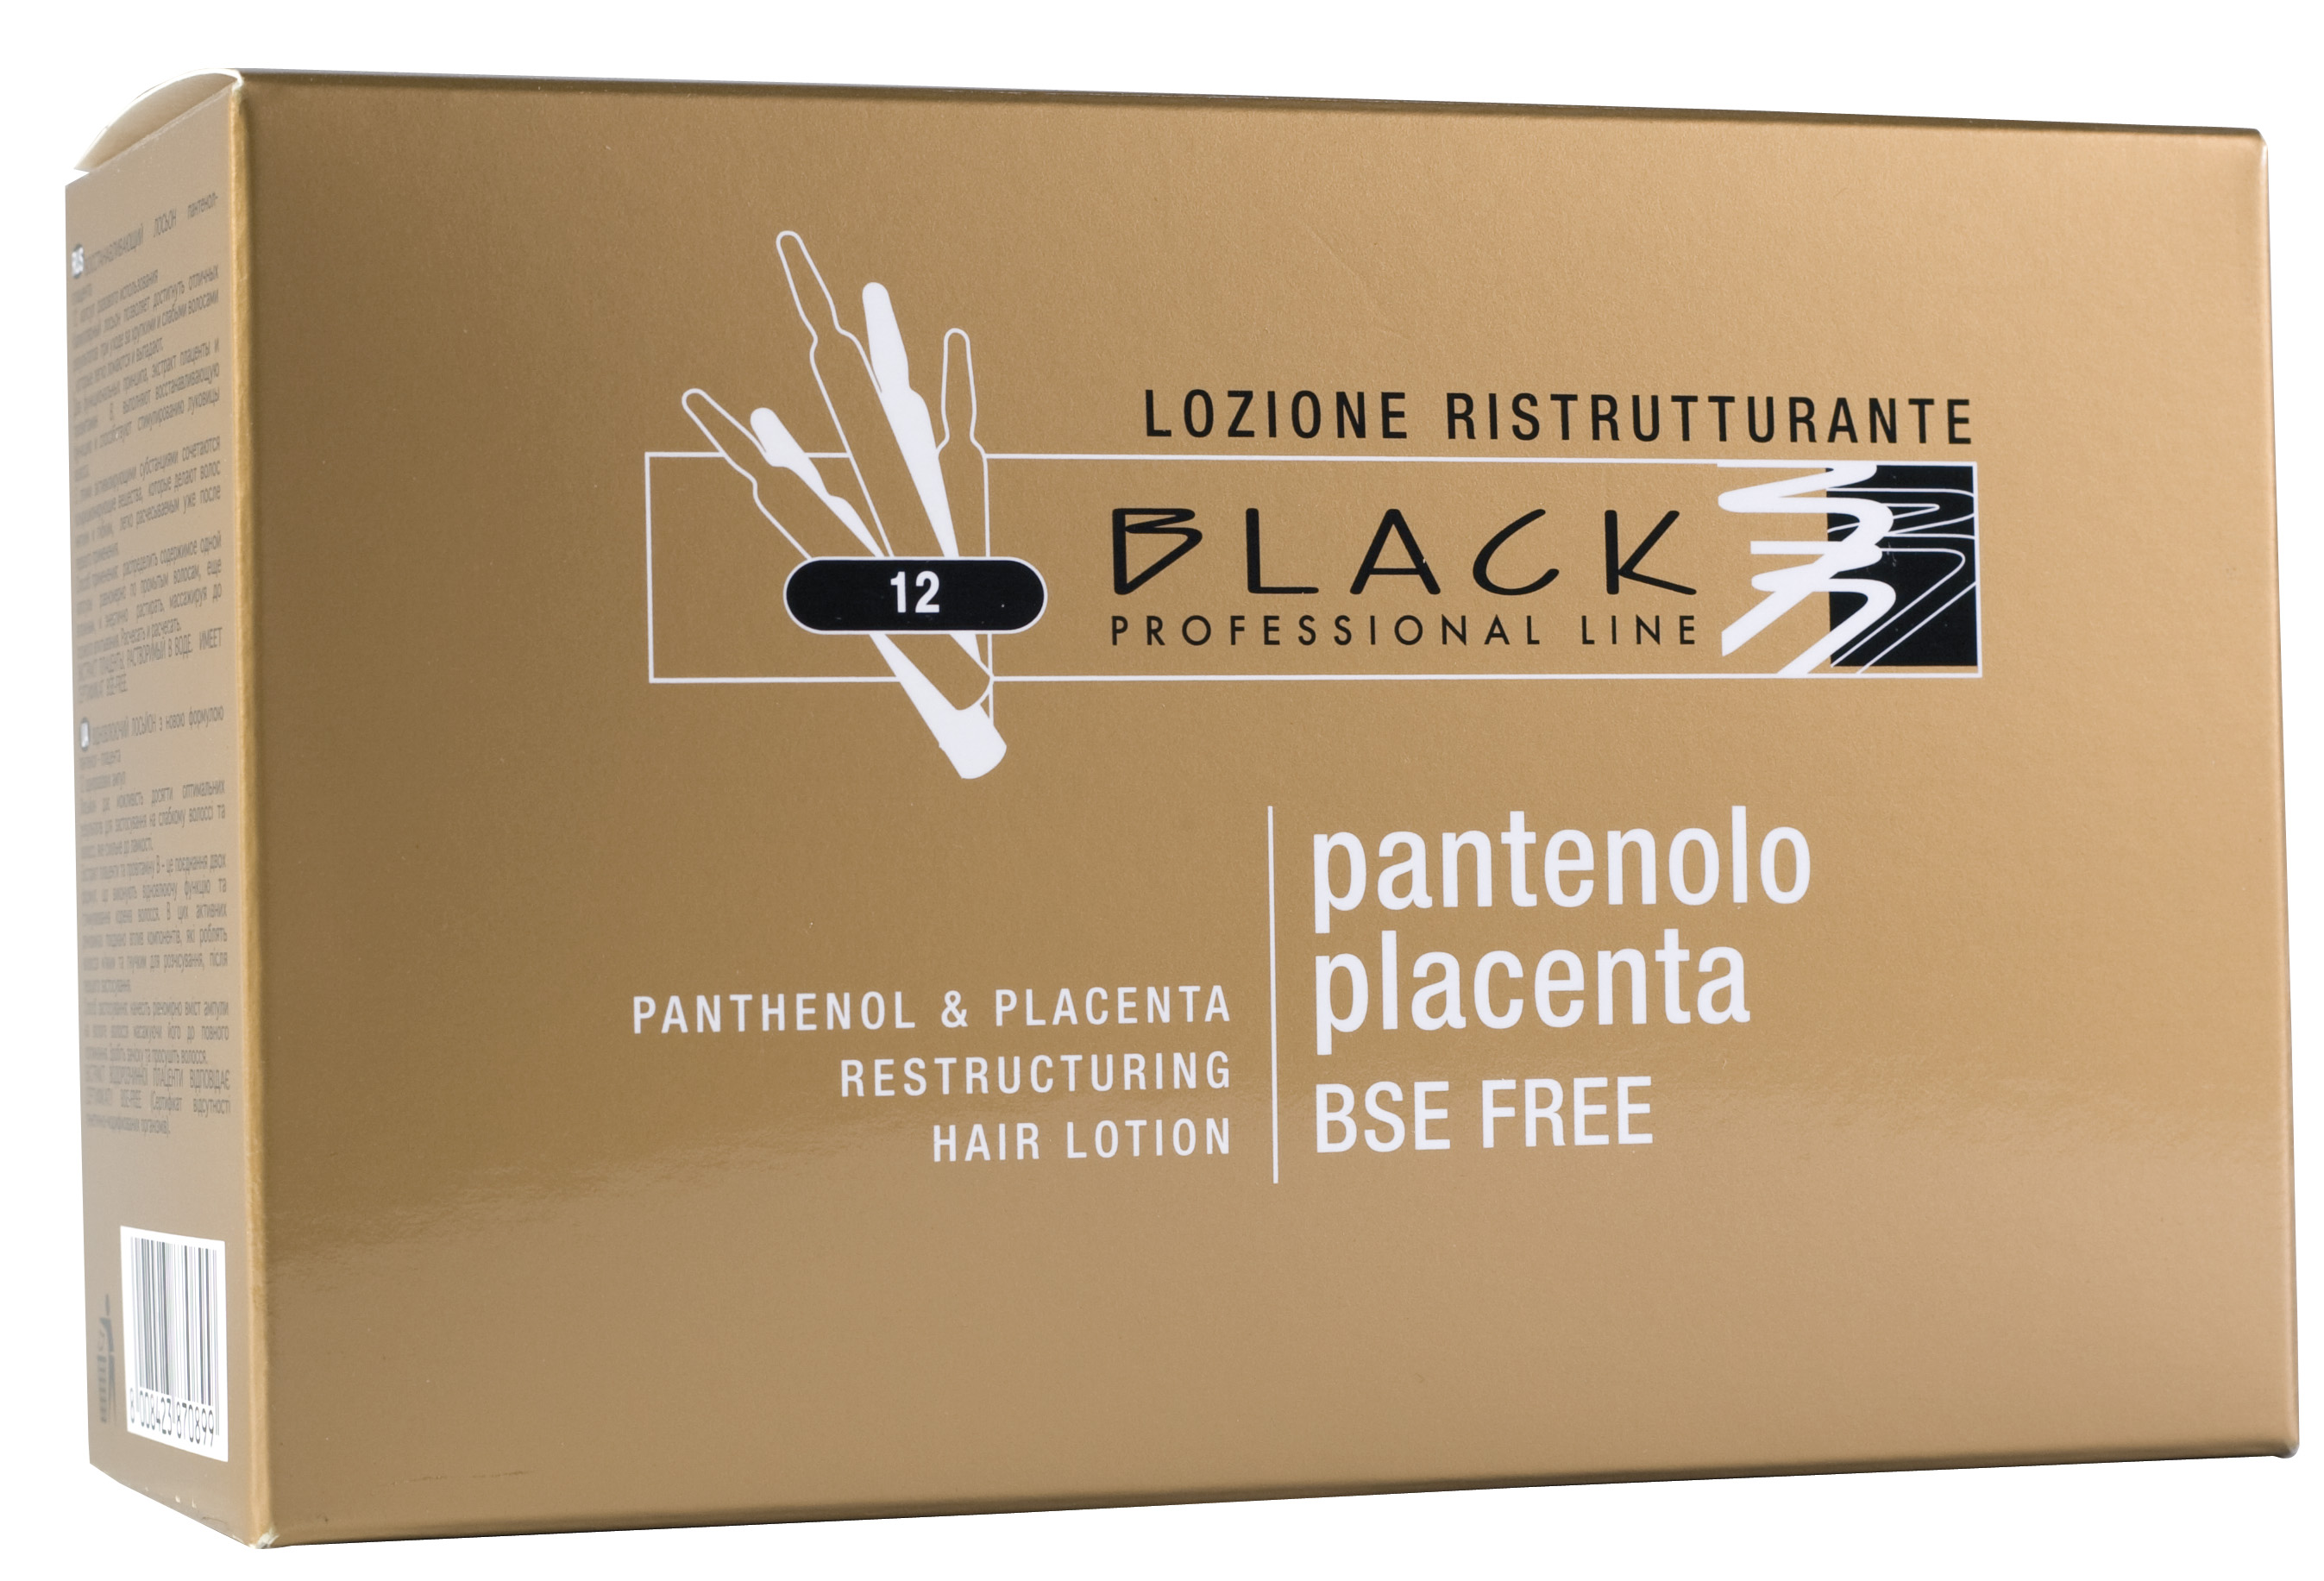 Black Panthenol a placenta Hair Lotion 12x10 ml